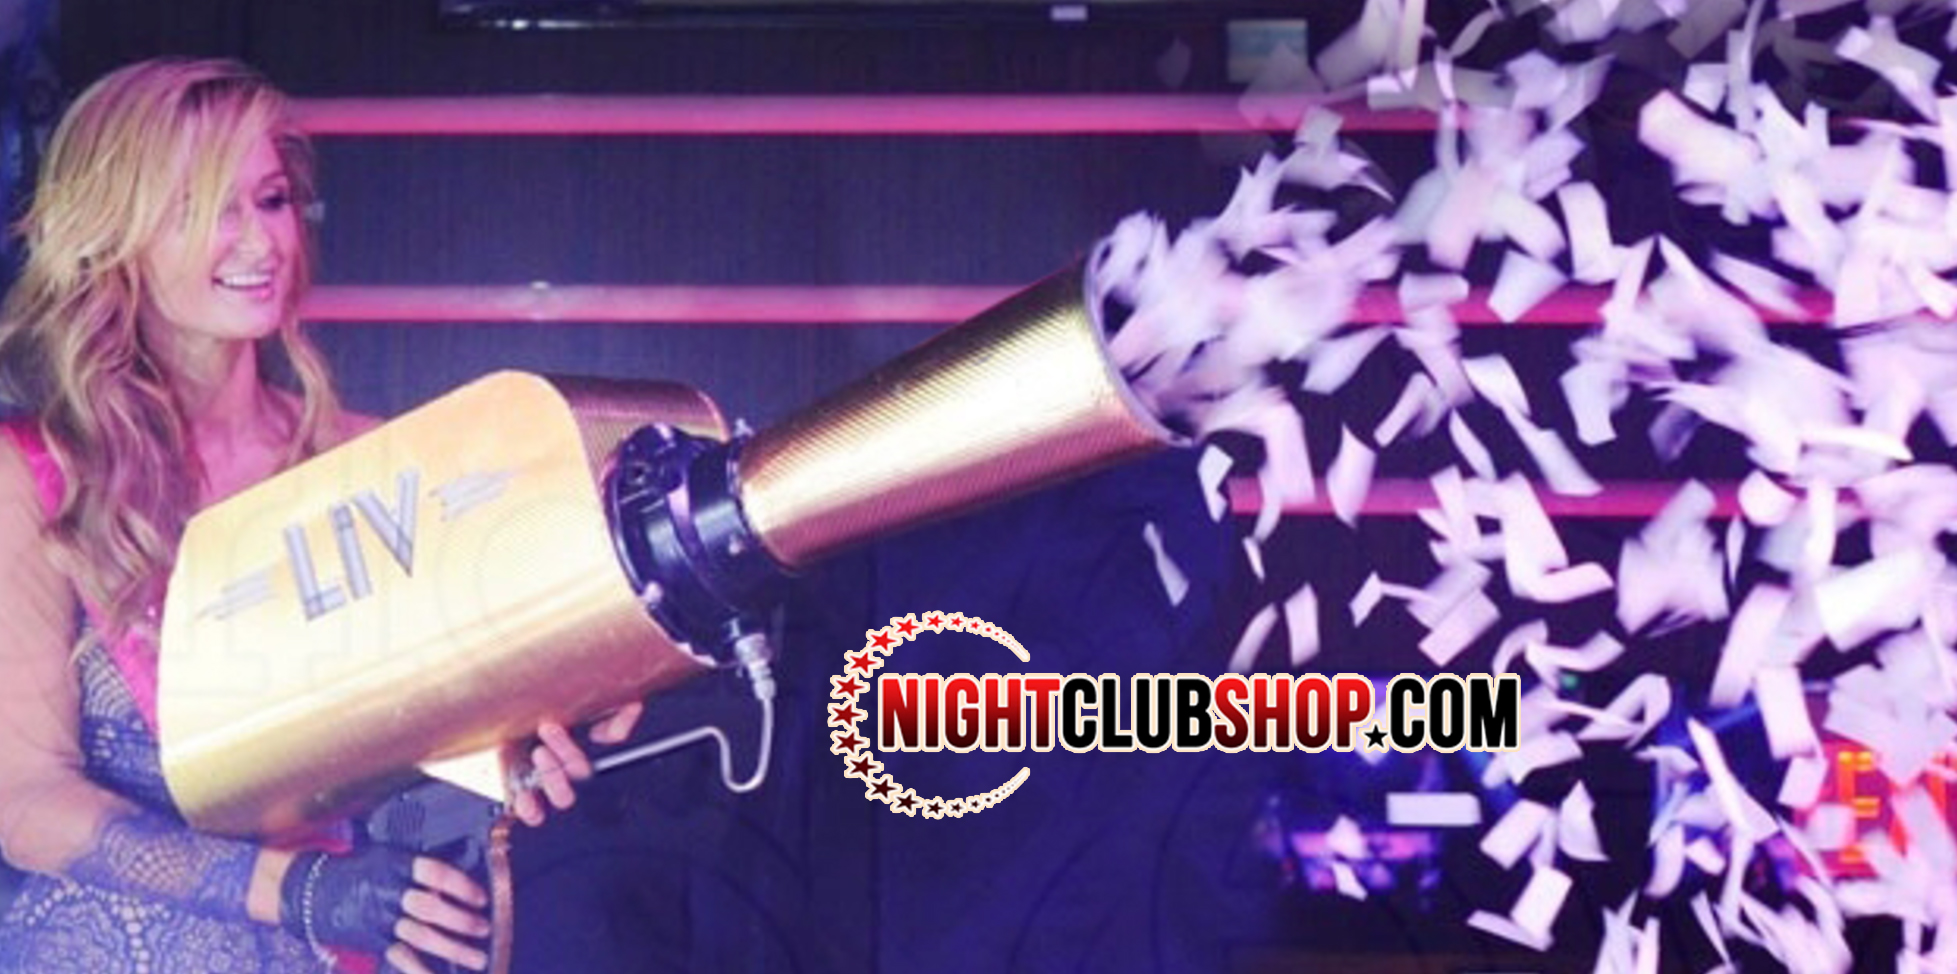 confetti-cannon-gun-blaster-launcher-co2-gerb-custom-nightclubshop.jpg